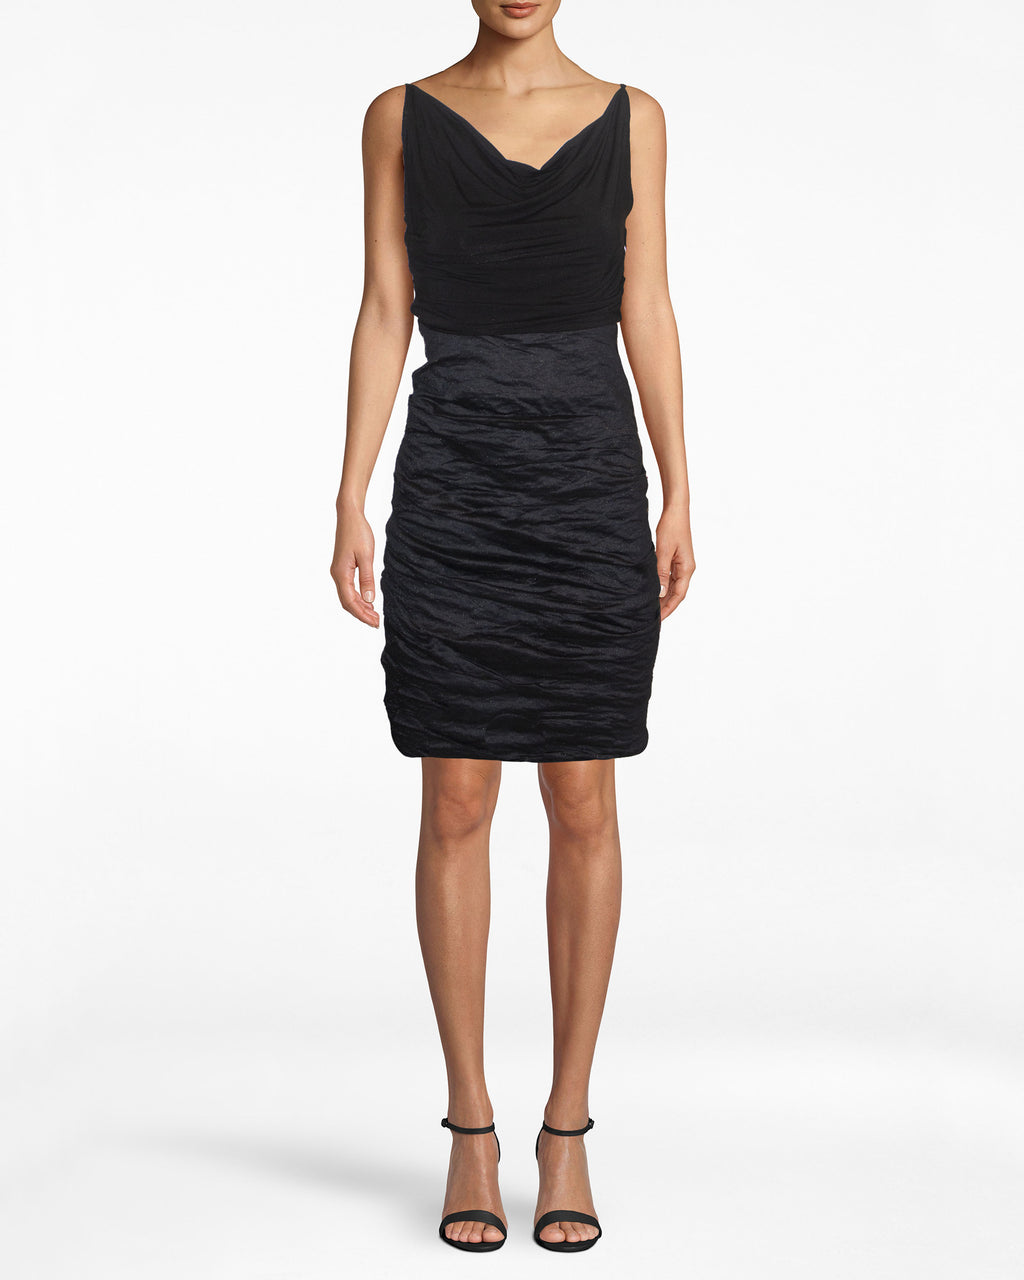 BS10181 - JERSEY AND COTTO METAL COMBO COWL NECK DRESS - dresses - short - The black dress is here to stay. This Cotton Metal stunner is sexy enough for a city night. Pair with a blazer, and you now have your office uniform. Exposed back zipper for closure.